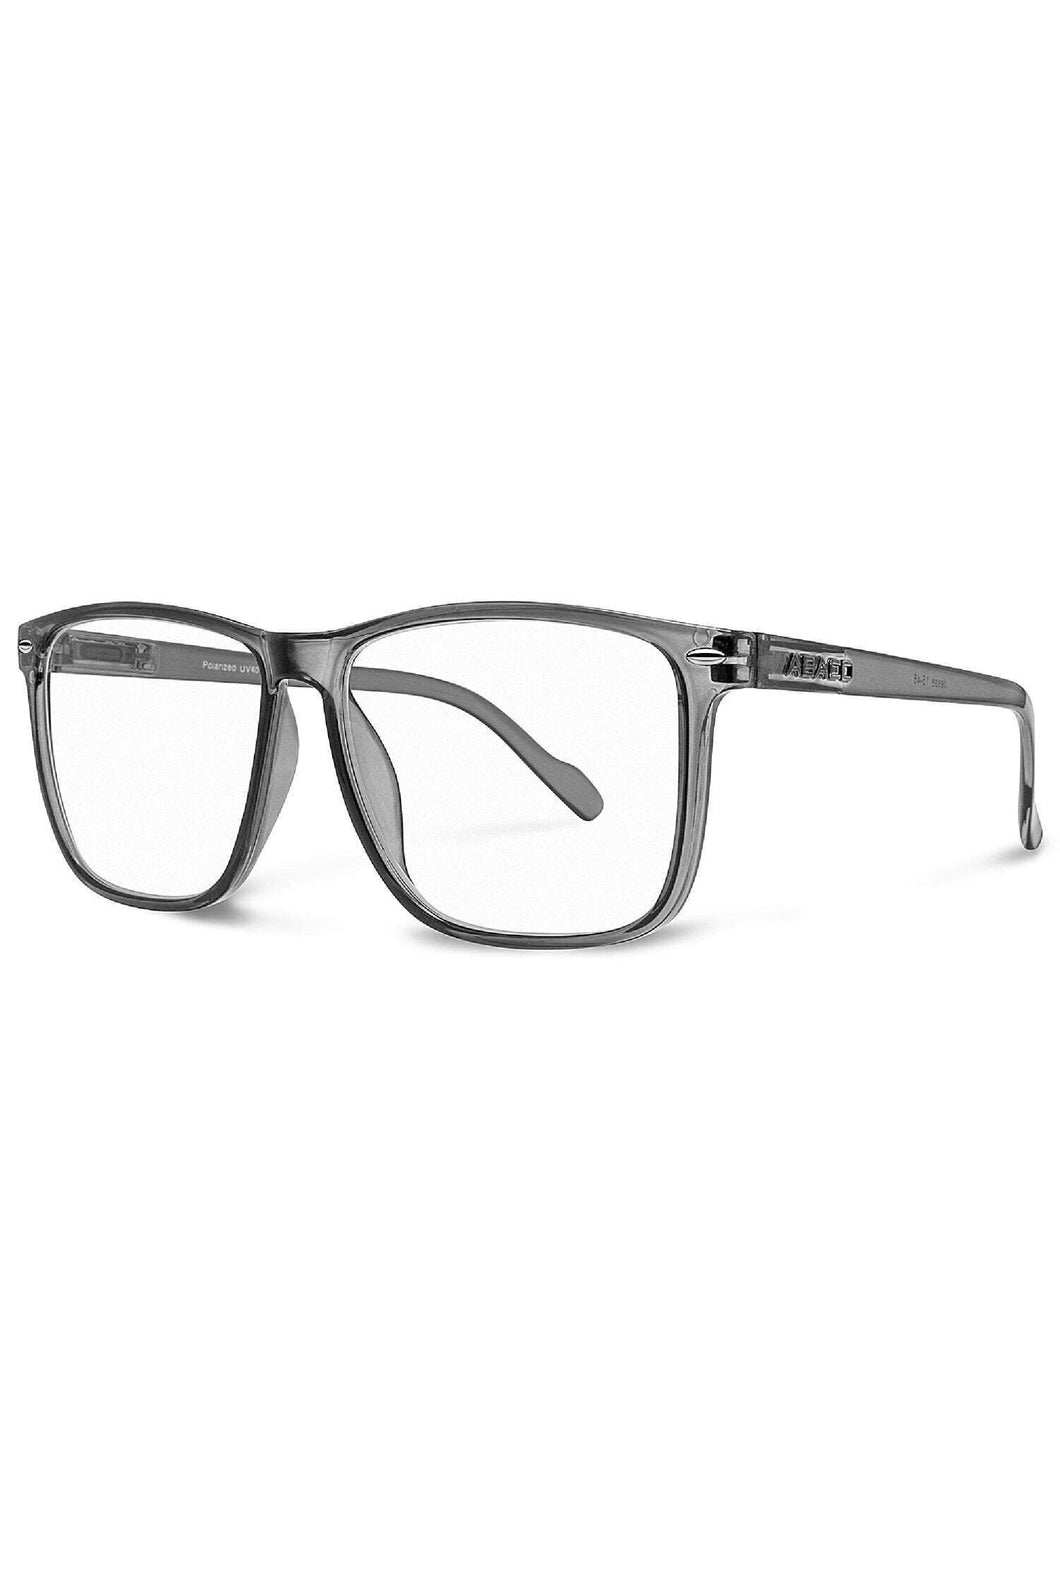 Jesse - Crystal Grey/Blue light blocking glasses